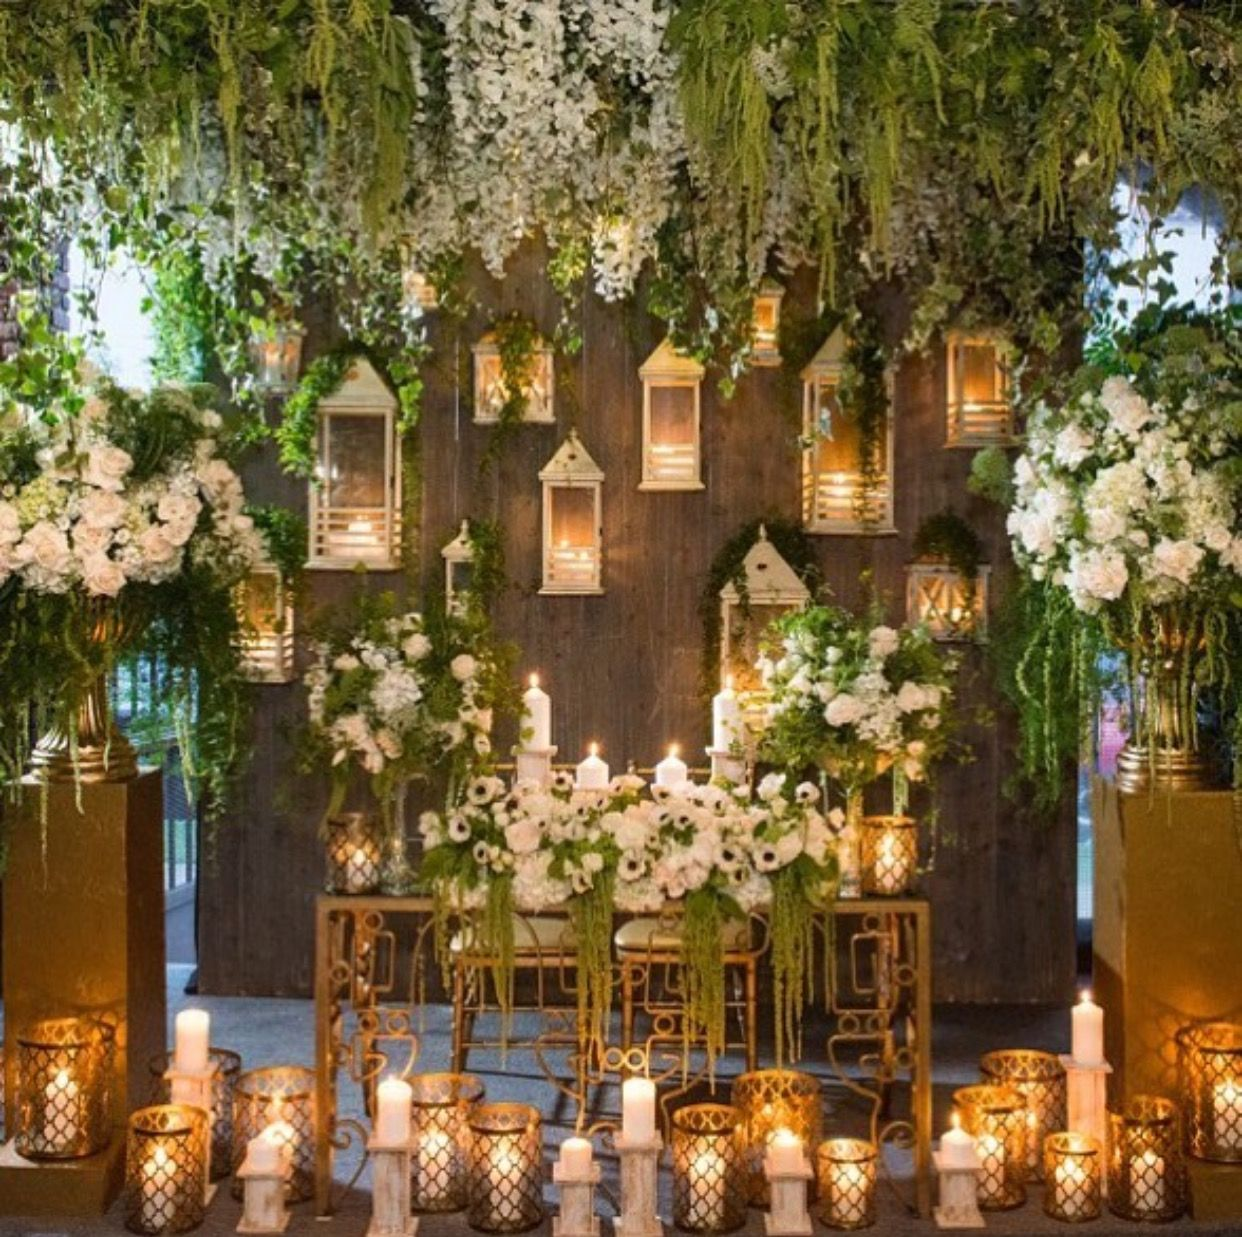 7 Barn Wedding Decoration Ideas For A Spring Wedding: Pin By Melissa Diehl On Wedding Inspo